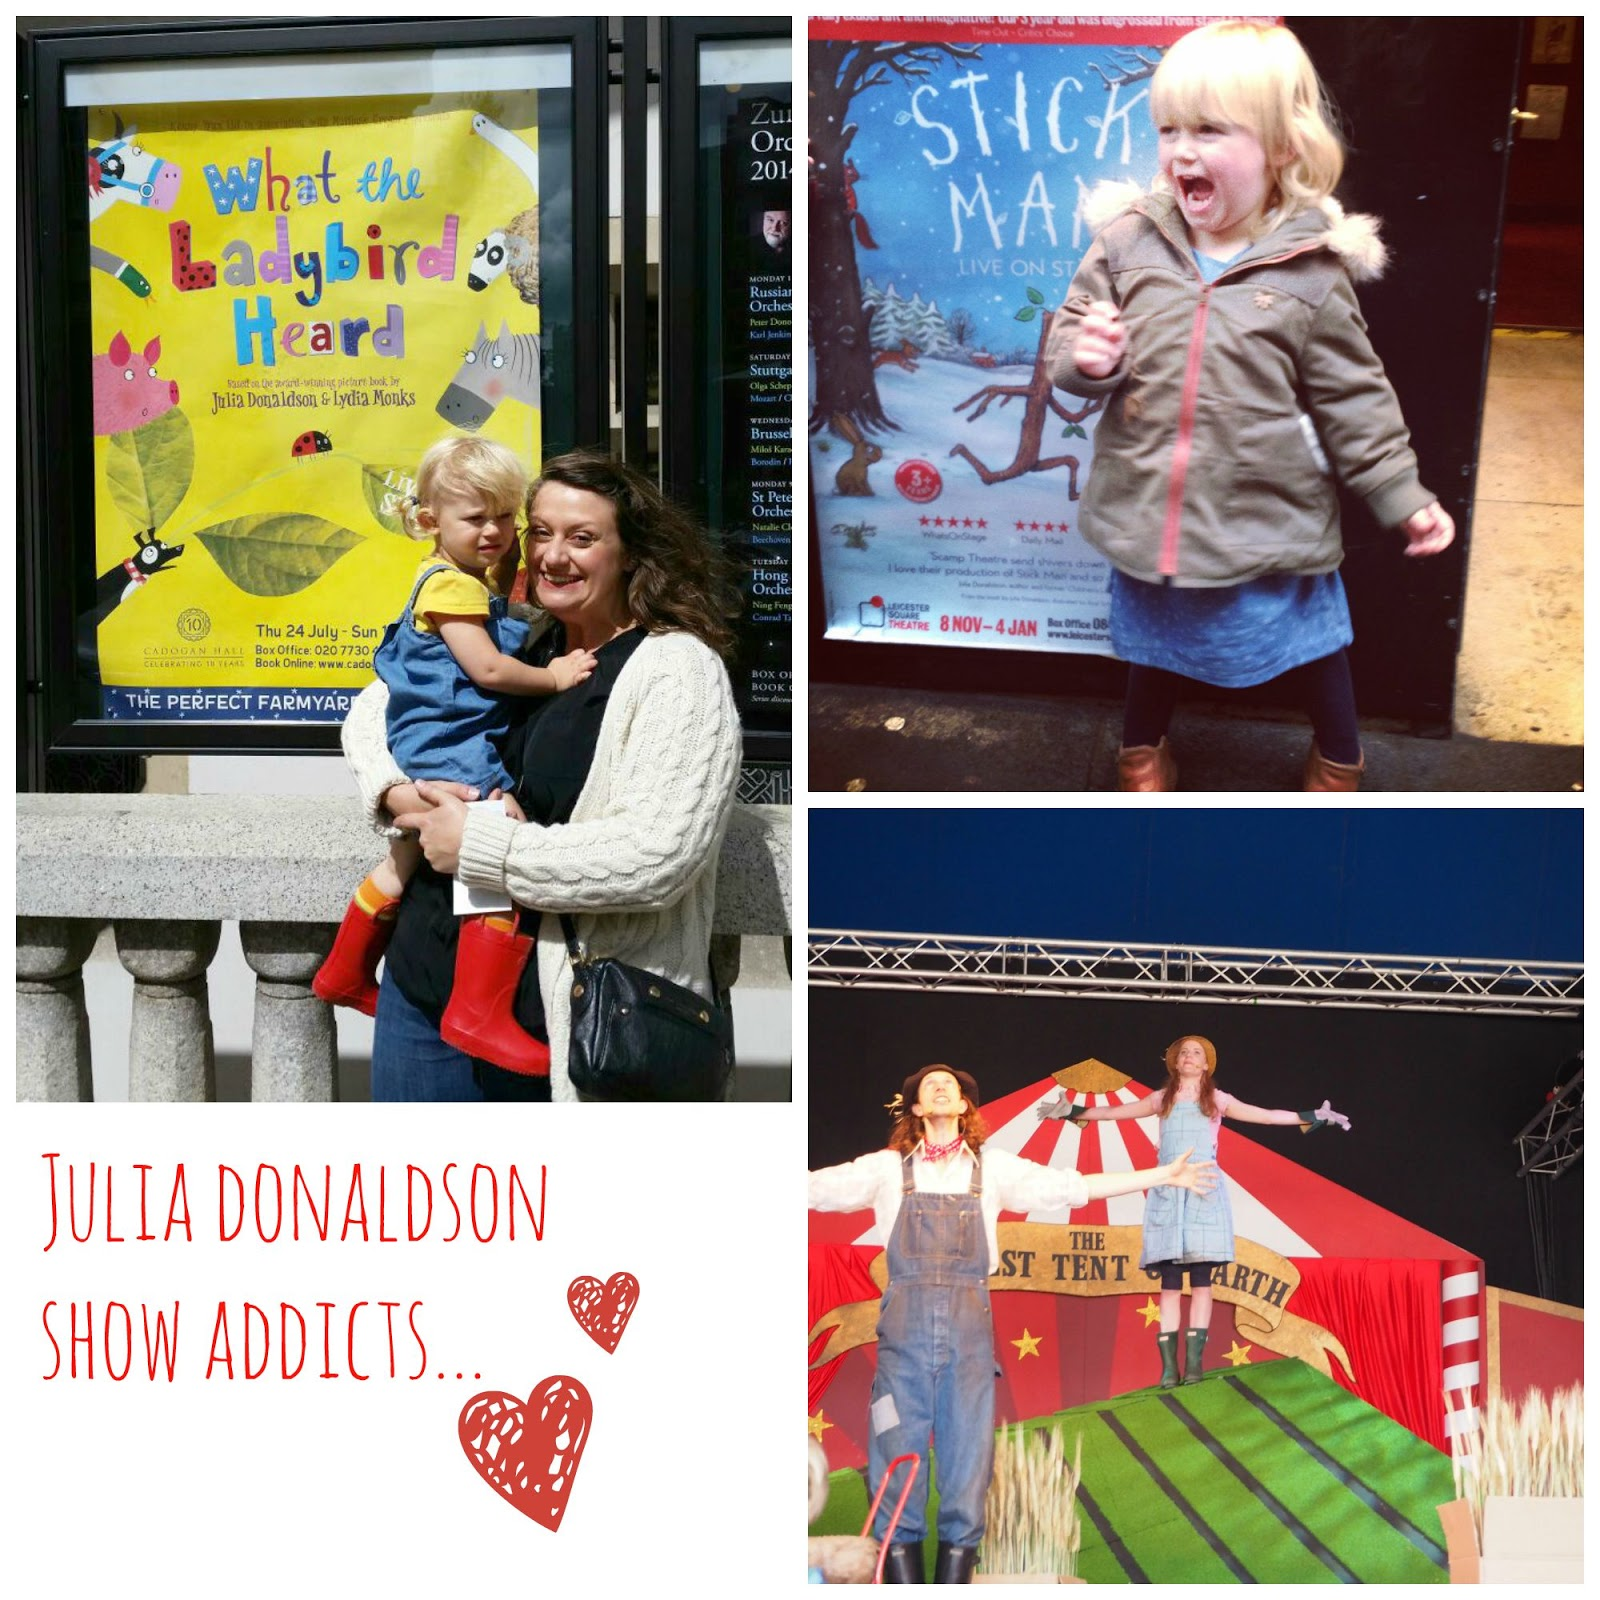 mamasVIB | V. I. BUYS: Welcome to #mamamondays - The Gruffalo Live, Christmas in July & Camp Bestival (again!) | julia donaldson | the gruffly | what the ladybird heard | live shows | toddler stage shows | days out with kids | stickman | theatres | shows | live action books | julia donaldson | gruffly live | tickets t shows | camp bestival | christmas in july | press events | boden | boden christmas | press | journalist | mamasVIB | festival | reds festival tickets | blogger